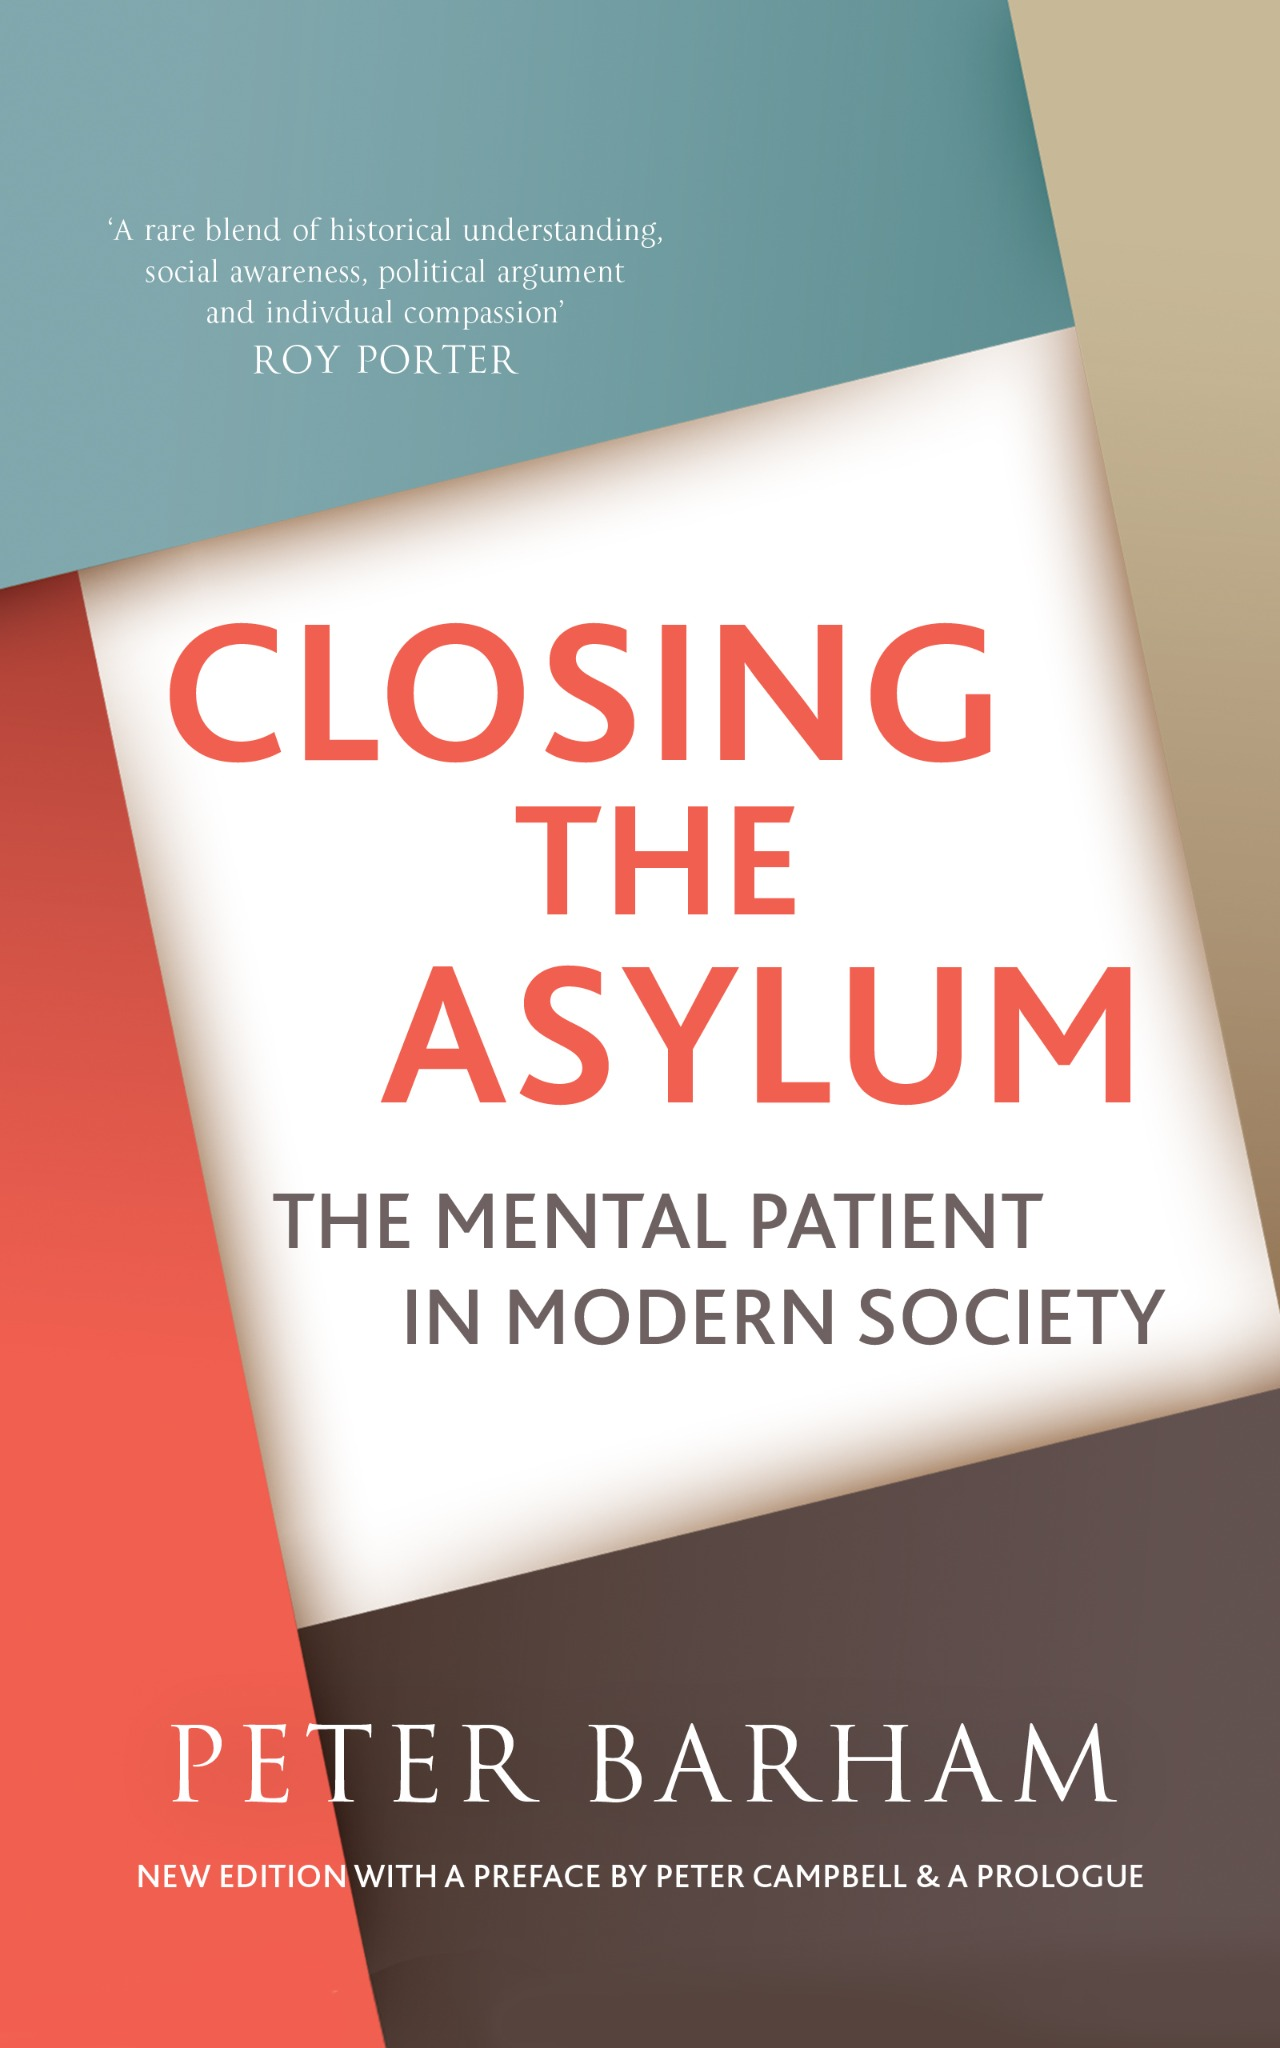 Closing the Asylum: The Mental Patient in Modern Society By Peter Barham